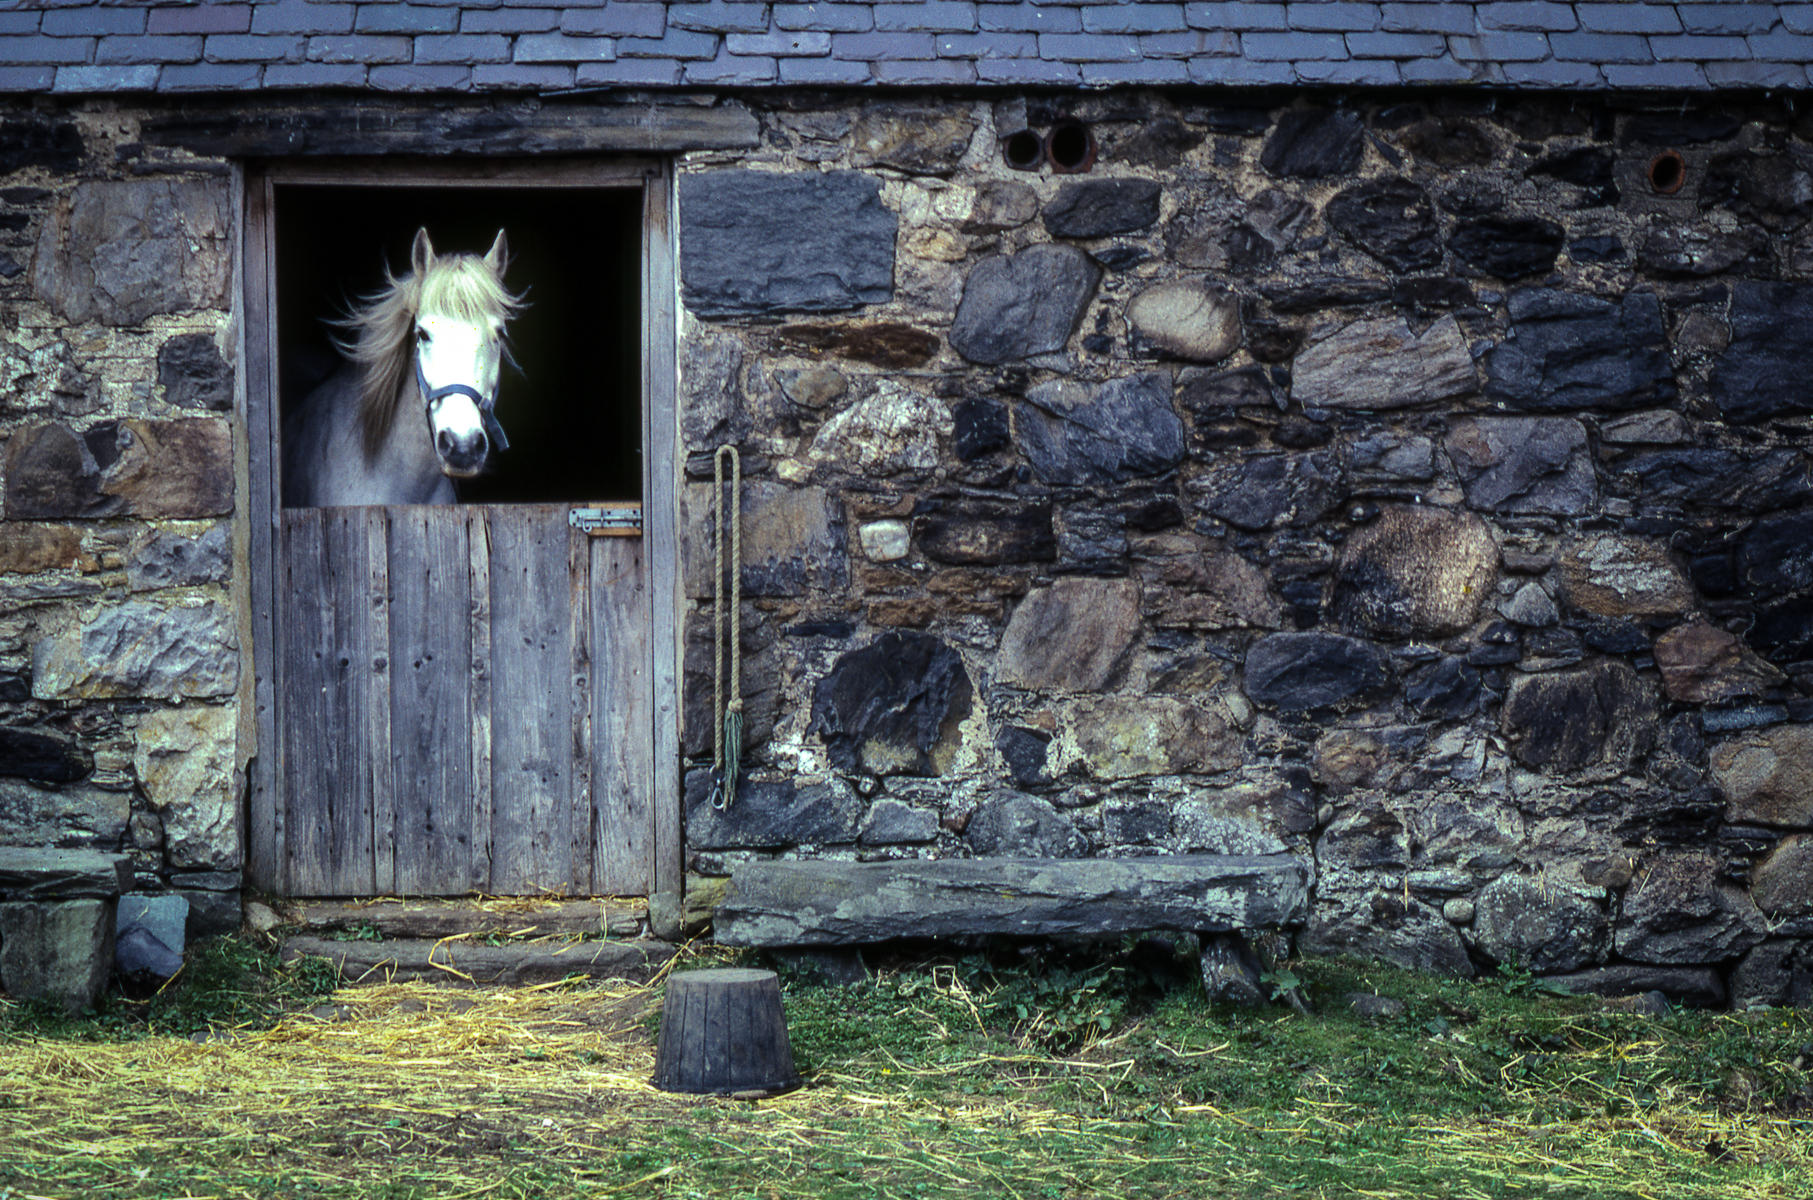 Scotland, near Loch Ness : equus et al : TIMOTHY FLOYD PHOTOGRAPHER, NATURE PHOTOGRAPHY, PHOTO ESSAYS, PHOTOJOURNALISM